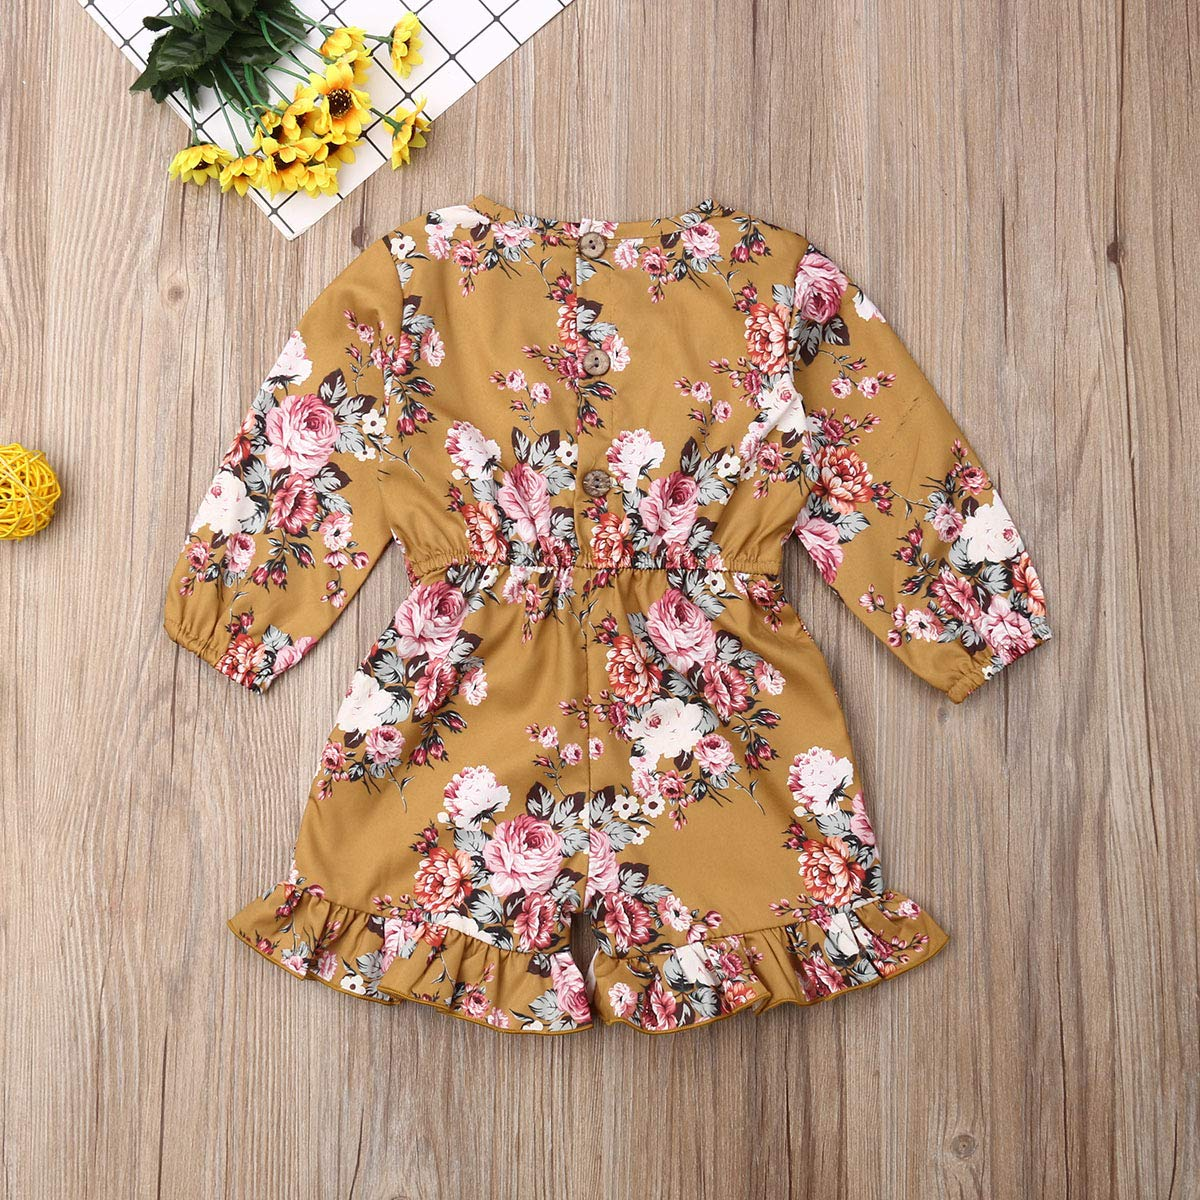 Fashion Summer Toddler Kids Twins Baby Girl Floral Sleeveless Romper Jumpsuit Ruffle Outfits